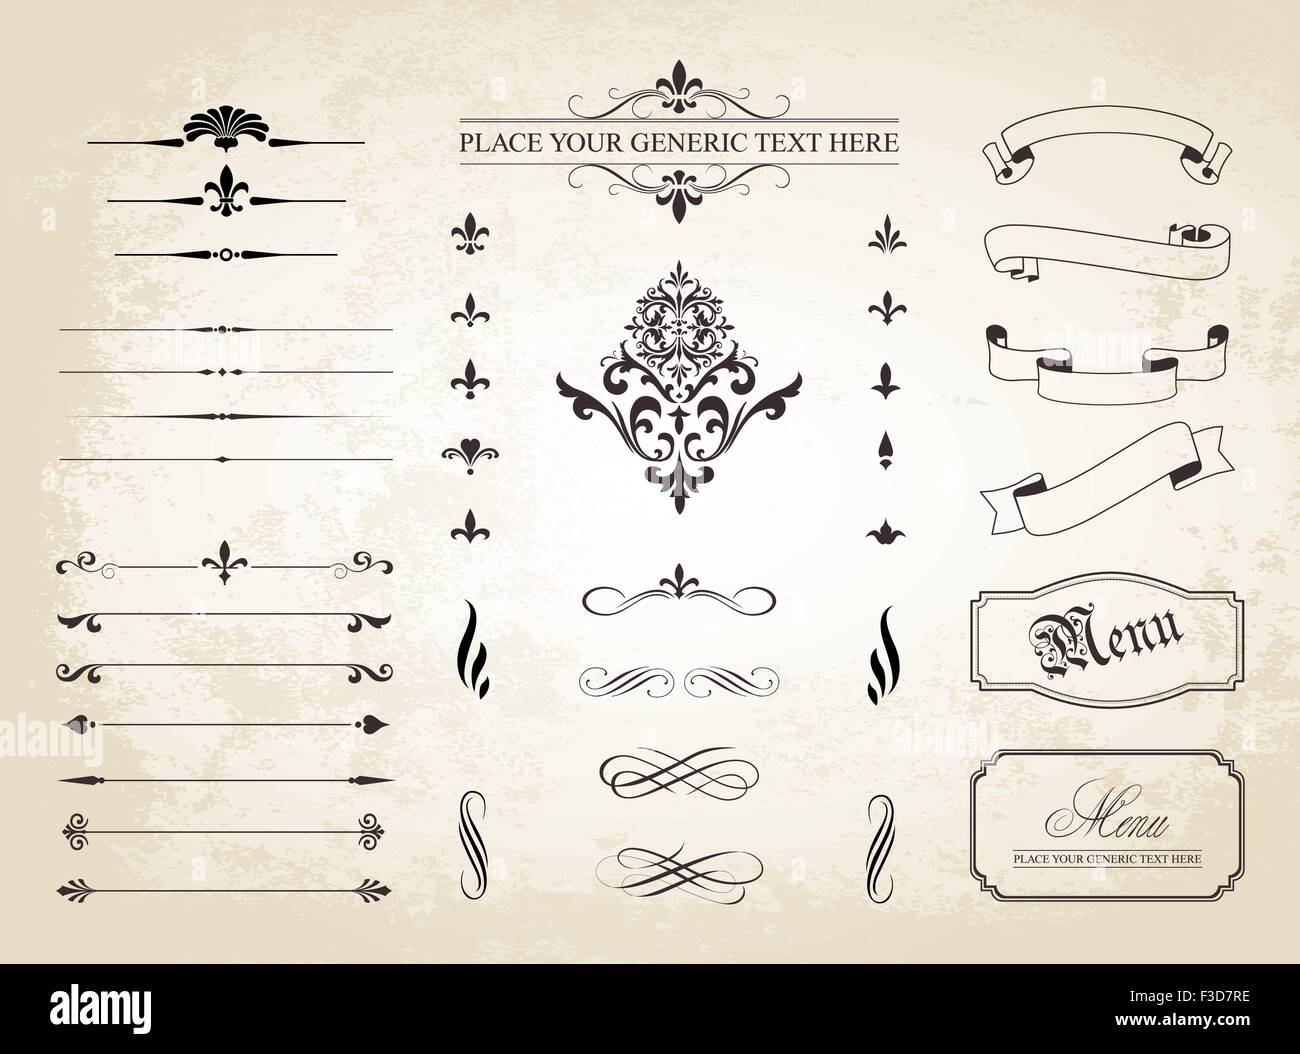 This image is a vector file representing a set of  Vintage Decorative Ornament Borders and Page Dividers. - Stock Image